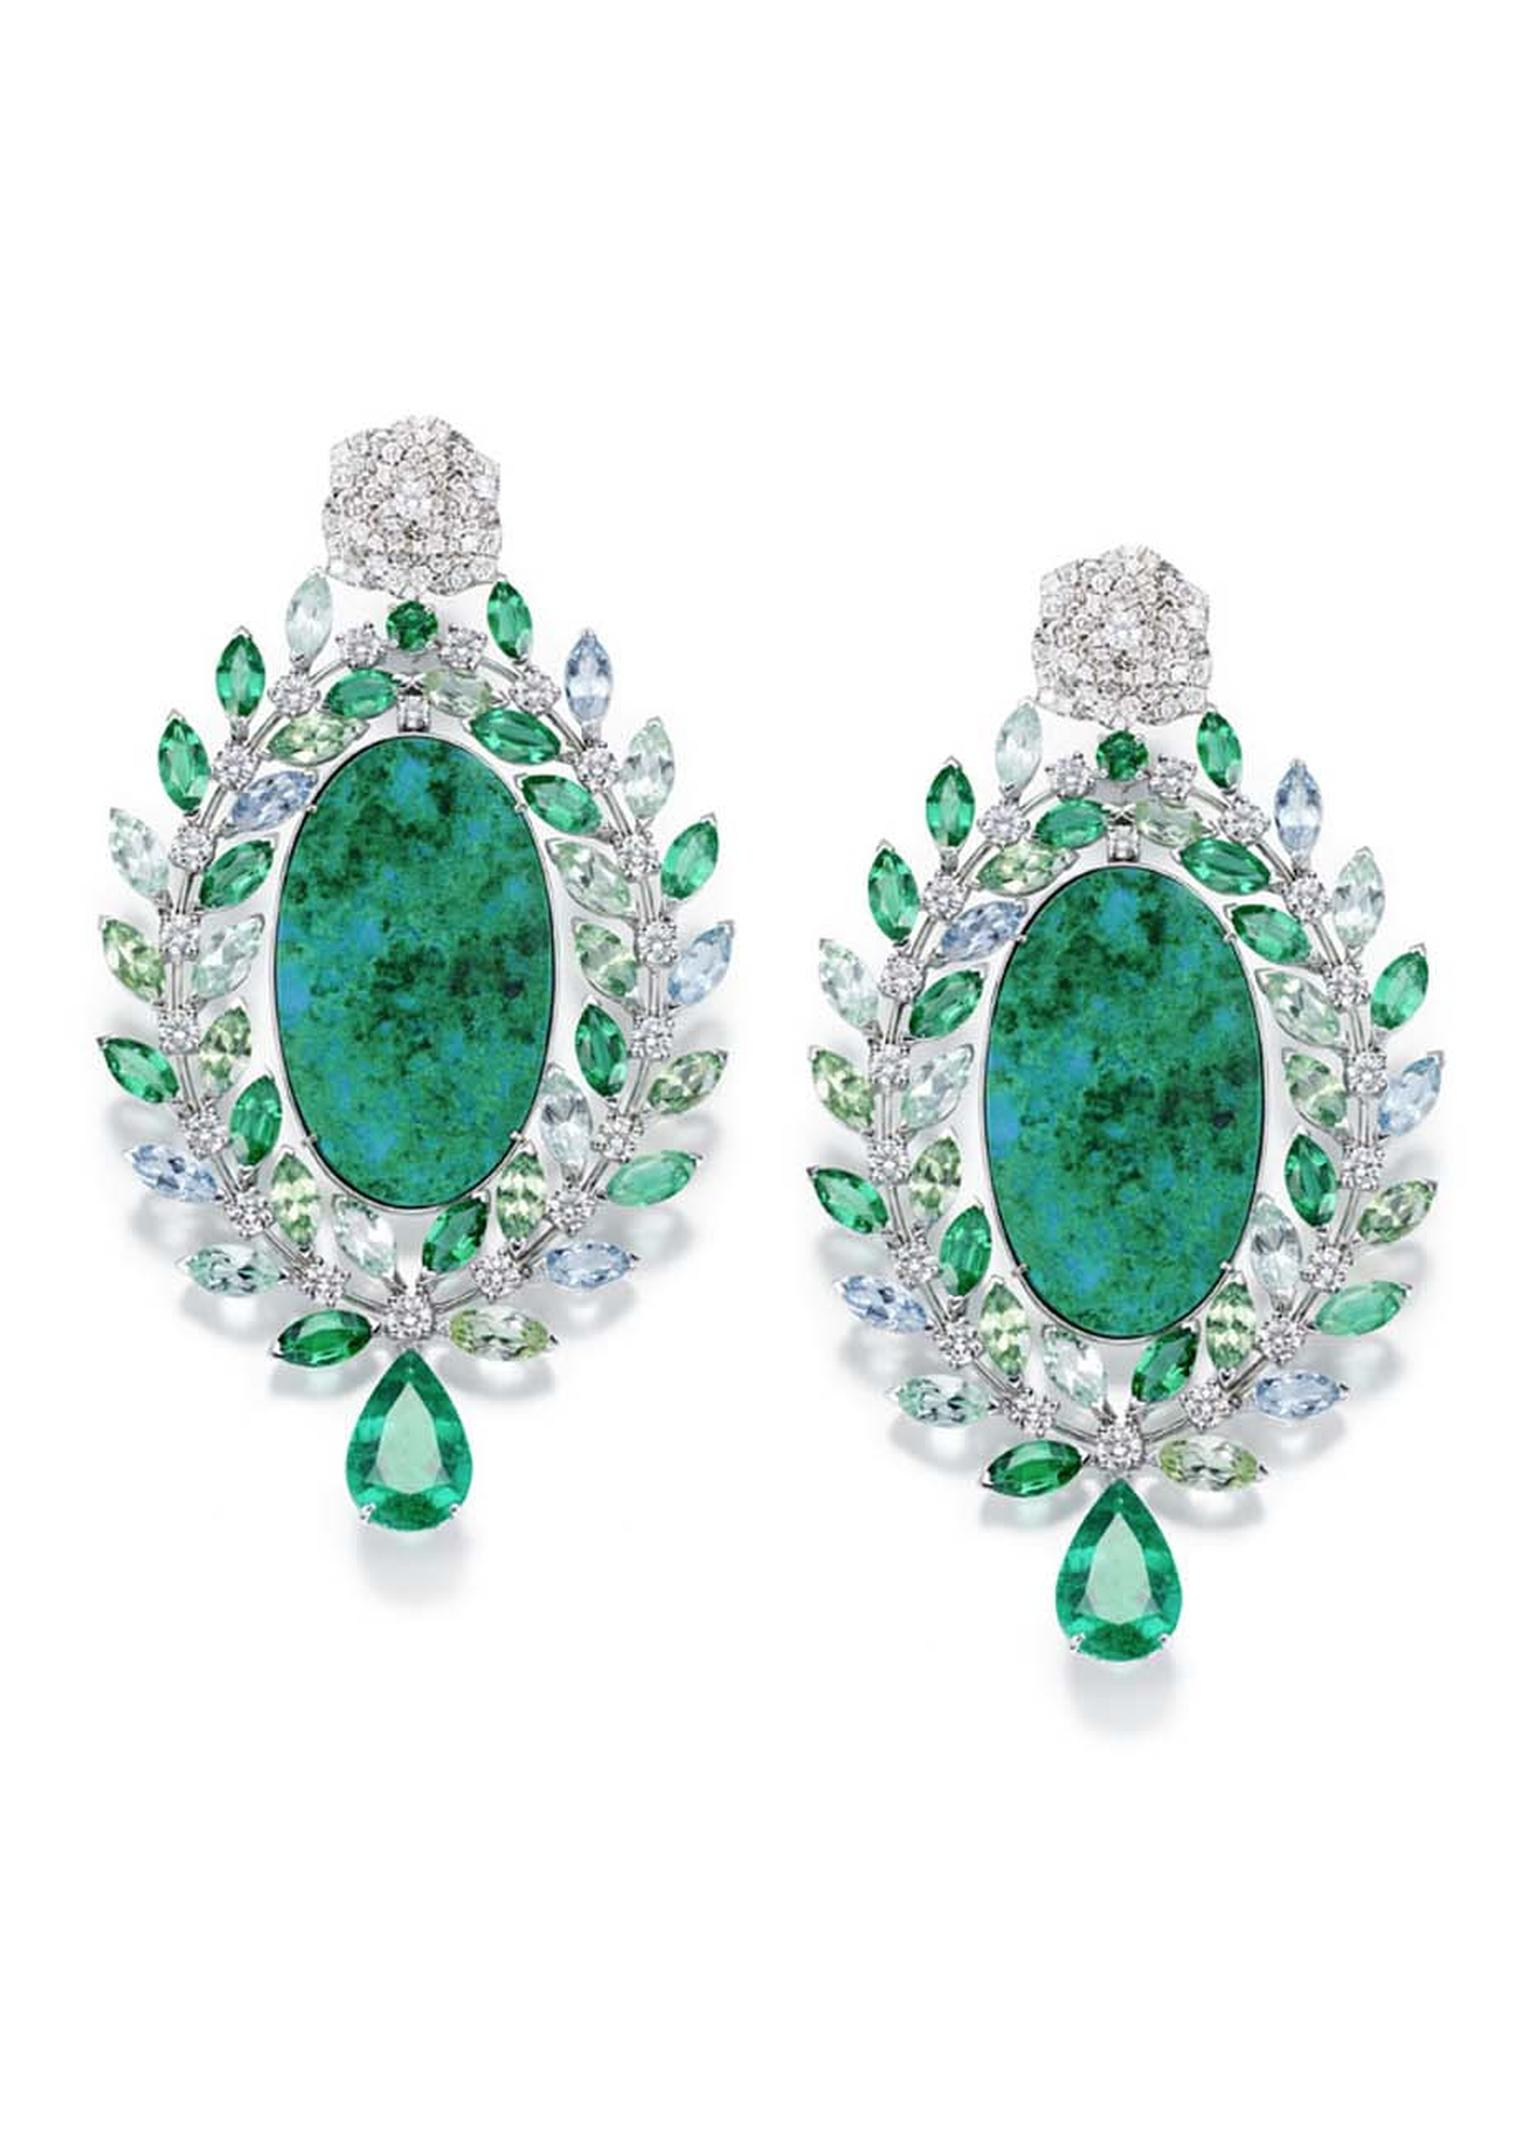 Piaget Rose Passion earrings in white gold, with diamonds and tourmalines